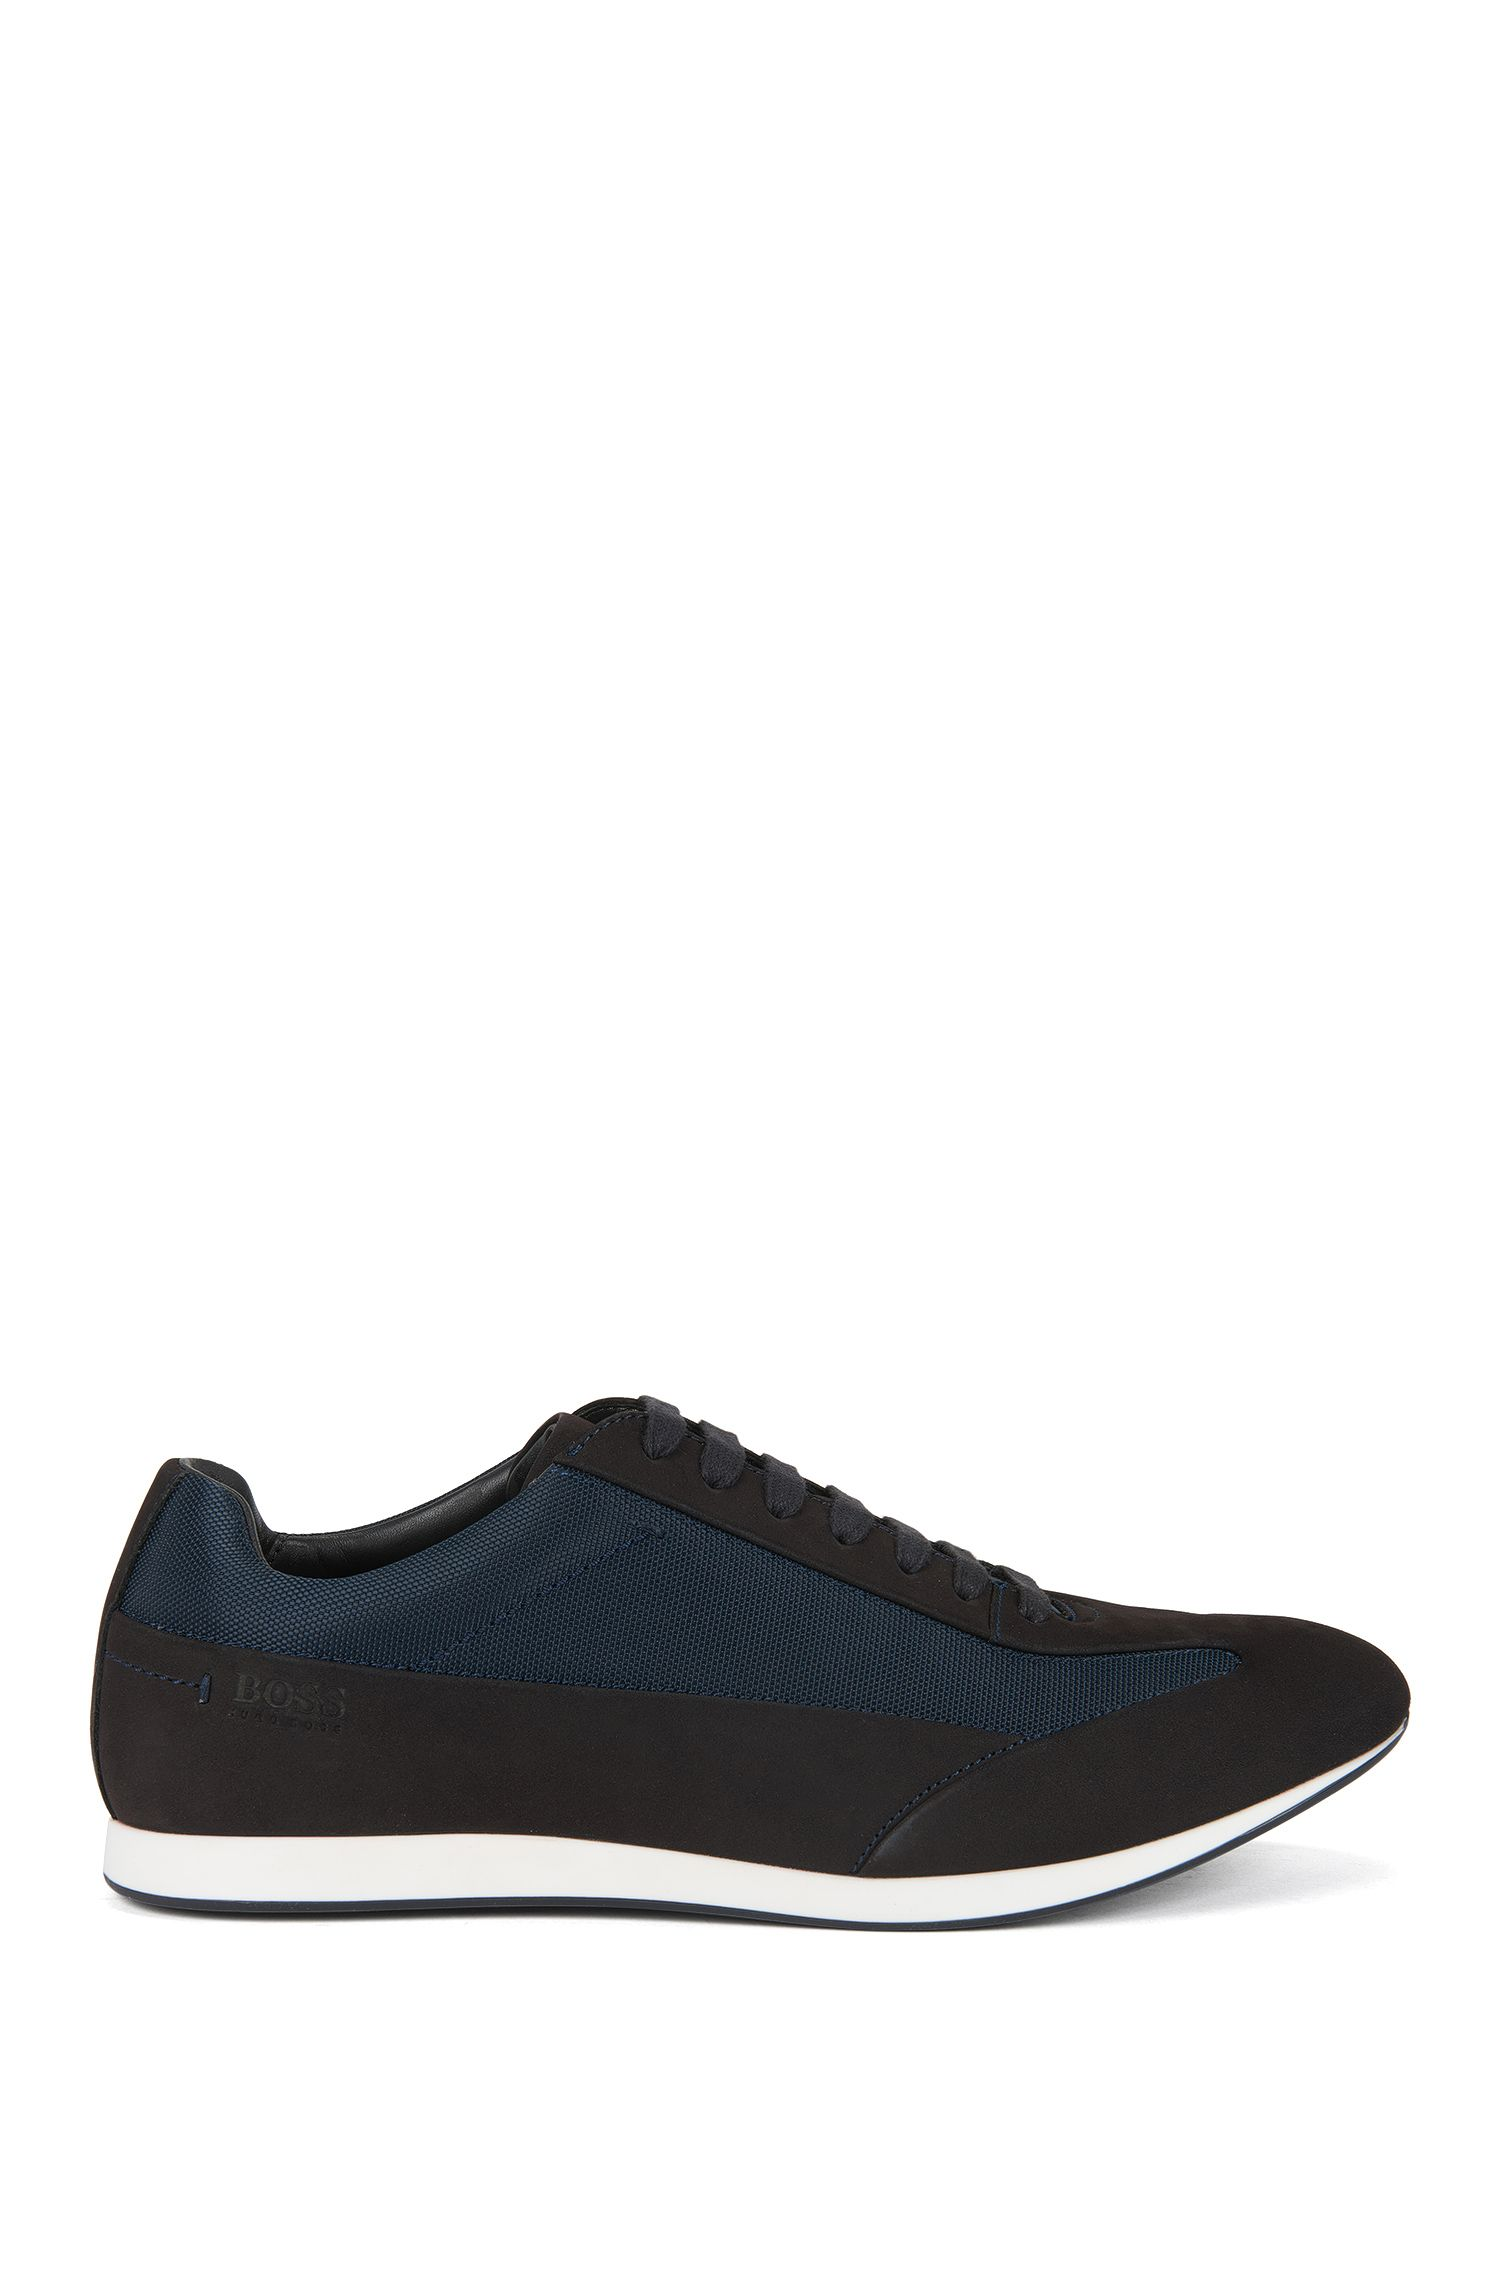 Lace-up leather trainers with textured panels by BOSS Menswear, Dark Blue